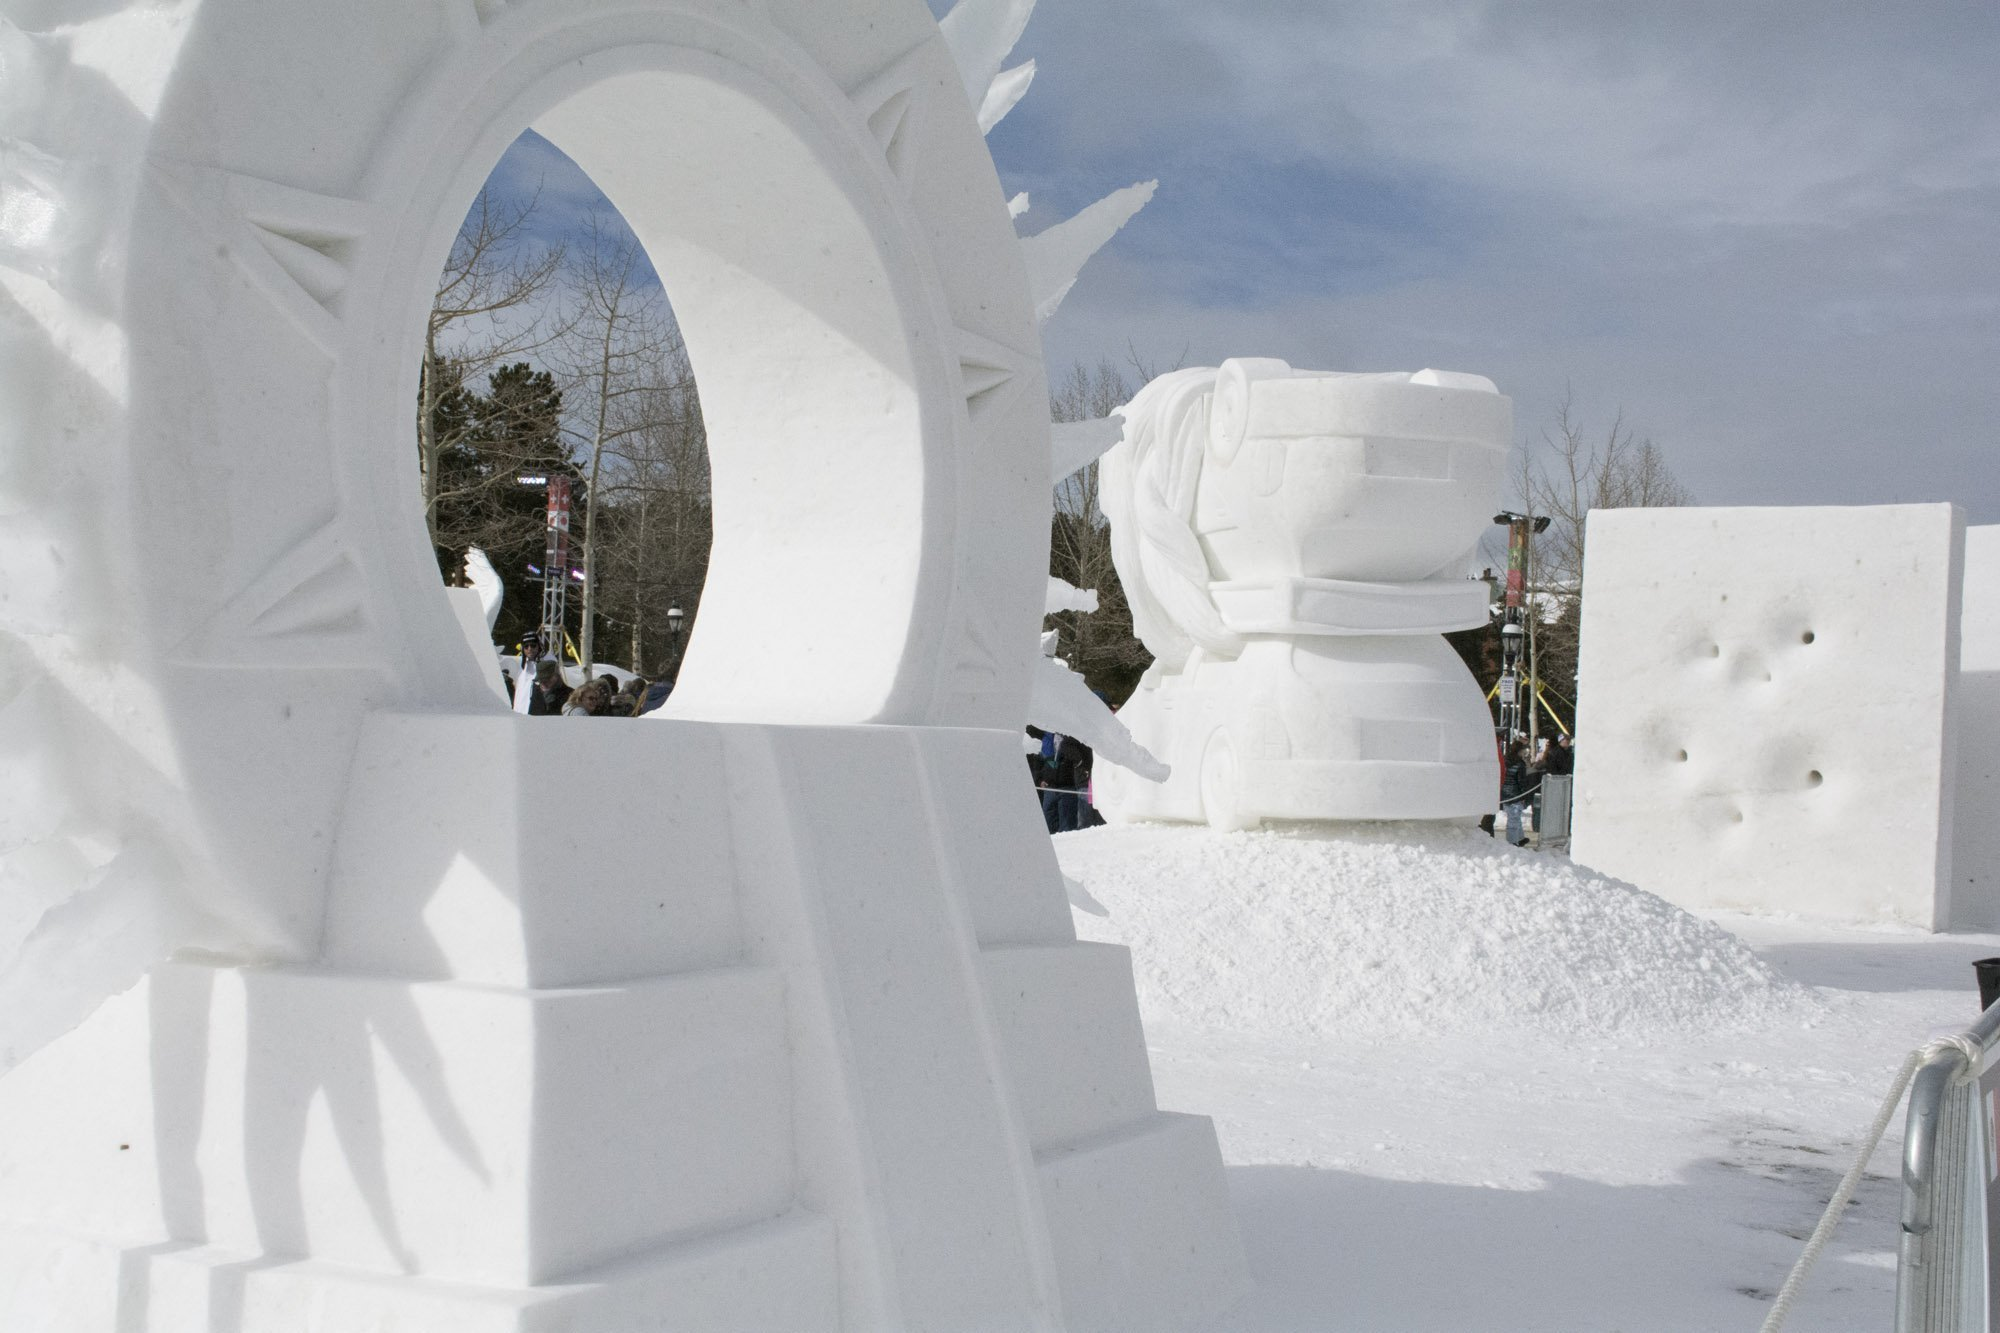 Breckenridge International Snow Sculpture Championships - 2017 year's winner